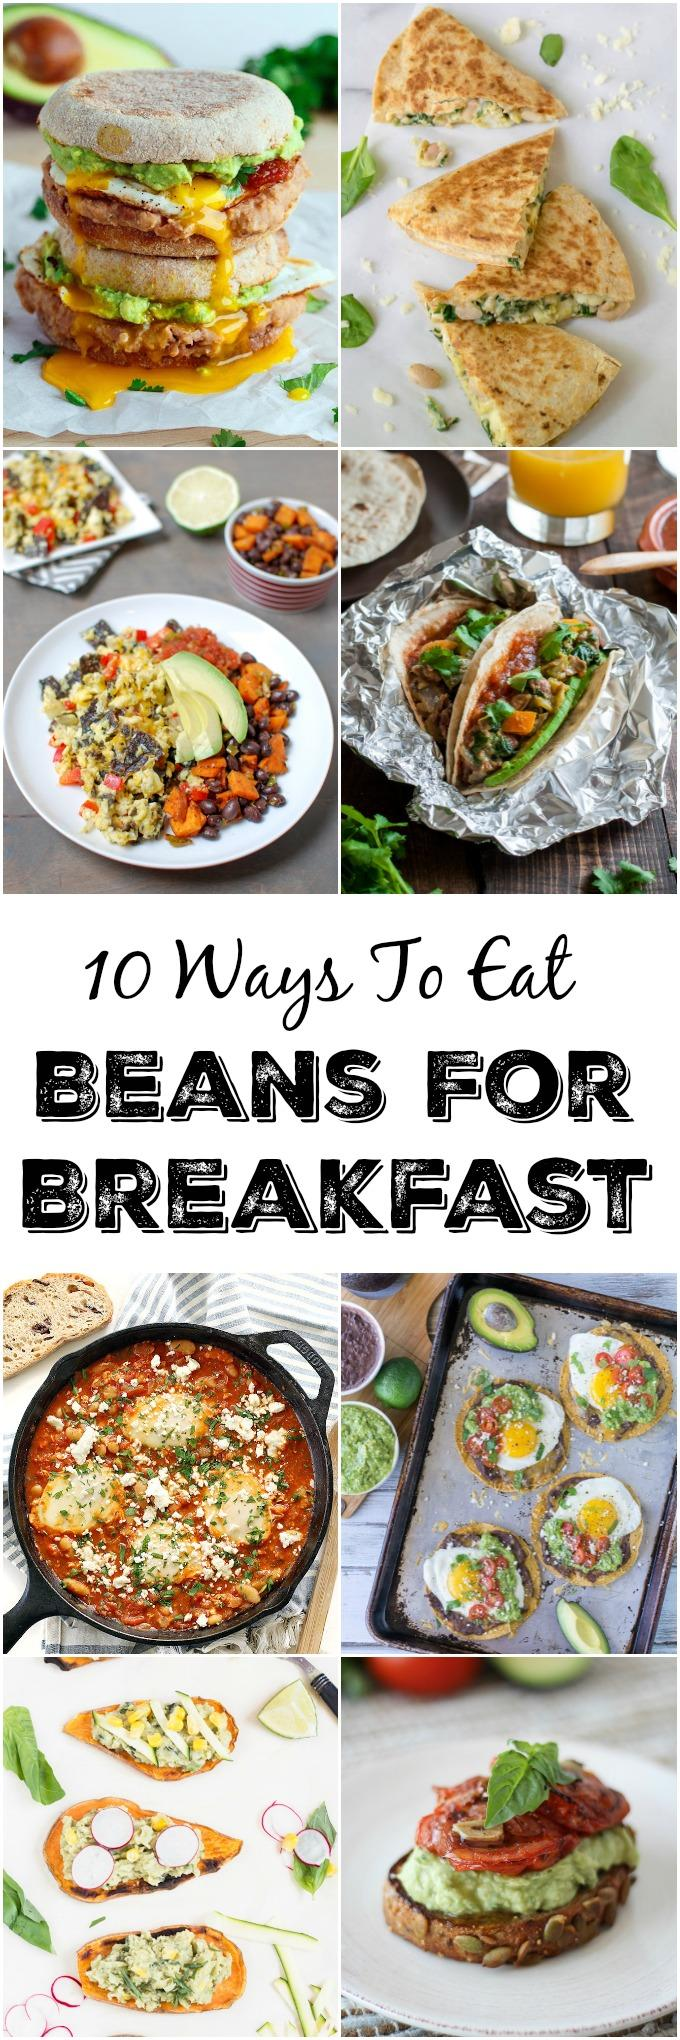 10 Ways to Eat Beans For Breakfast - Start your day with these easy recipes that are full of protein and fiber!